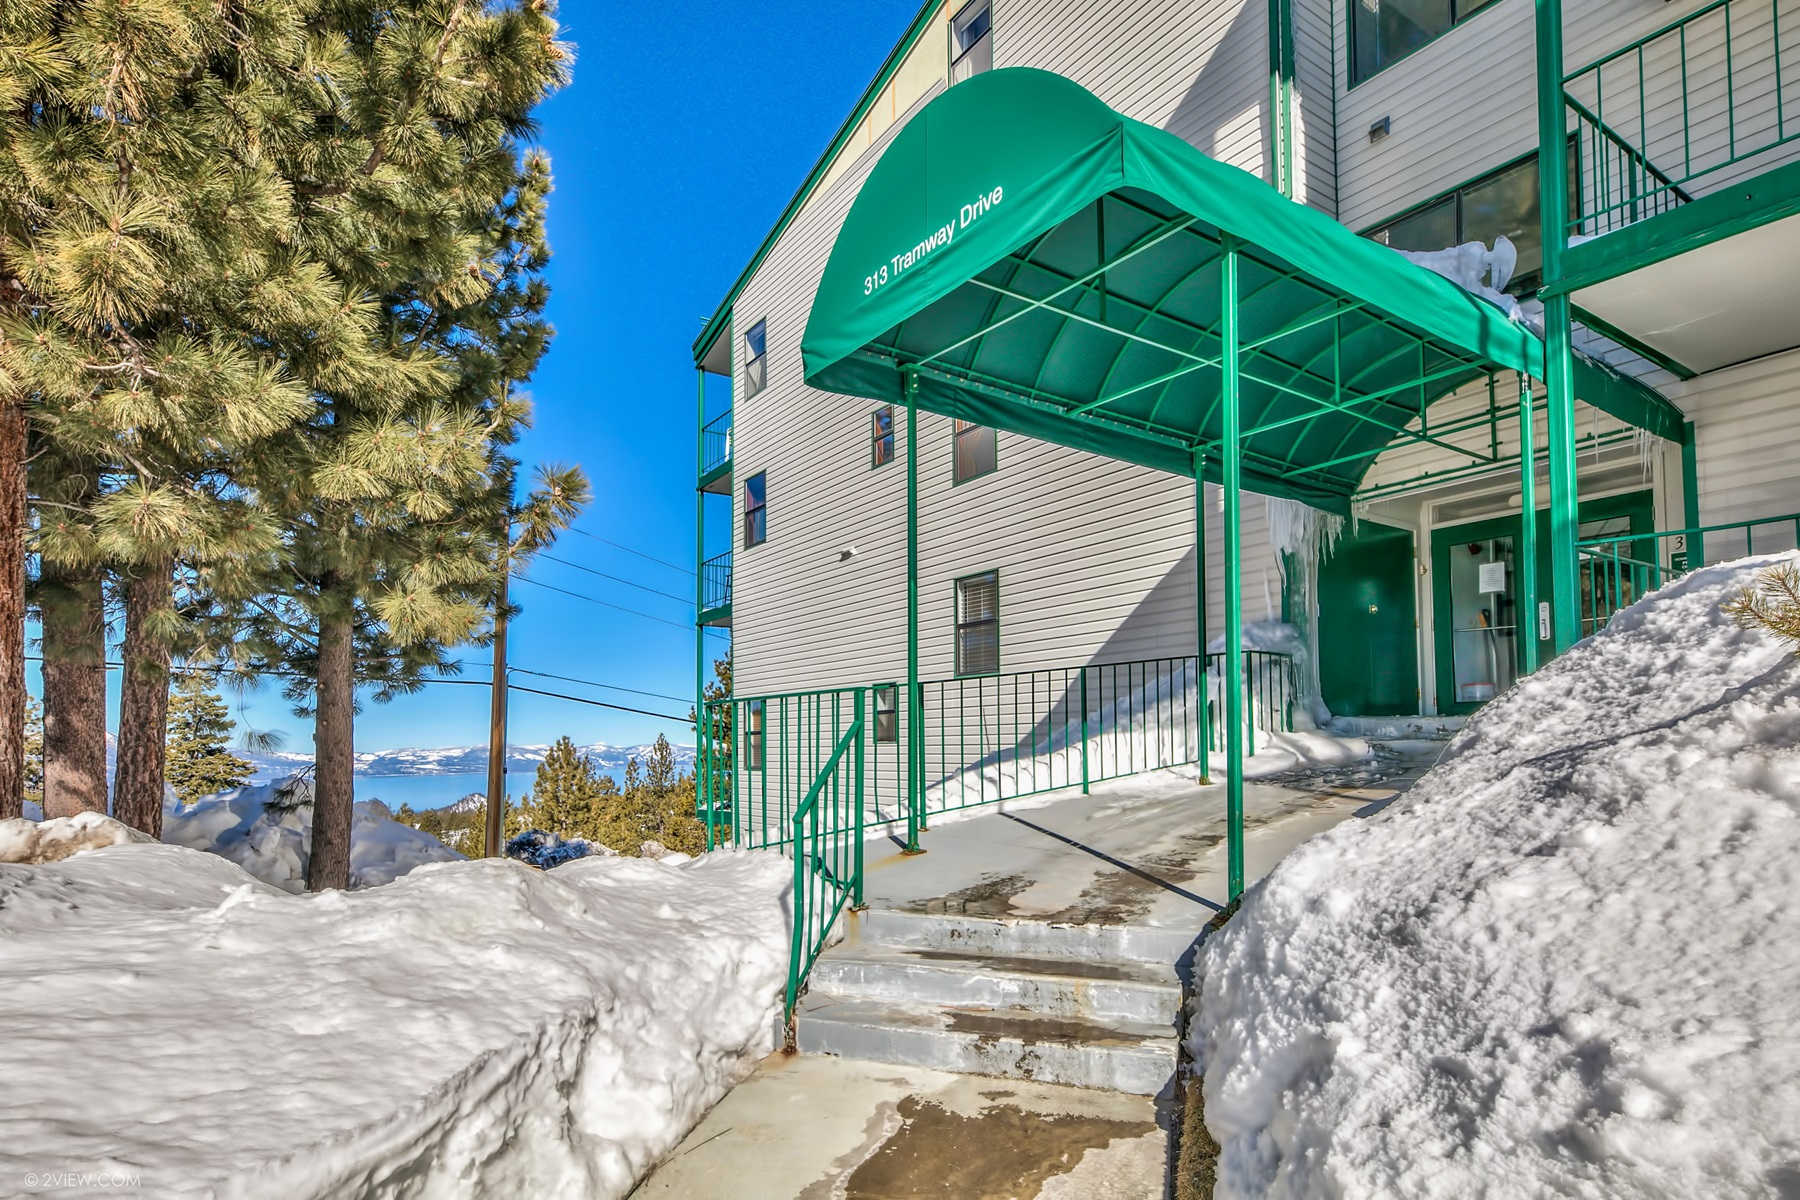 Additional photo for property listing at 313 Tramway #11, Stateline, NV 89449 313 Tramway #11 Stateline, Nevada 89449 United States